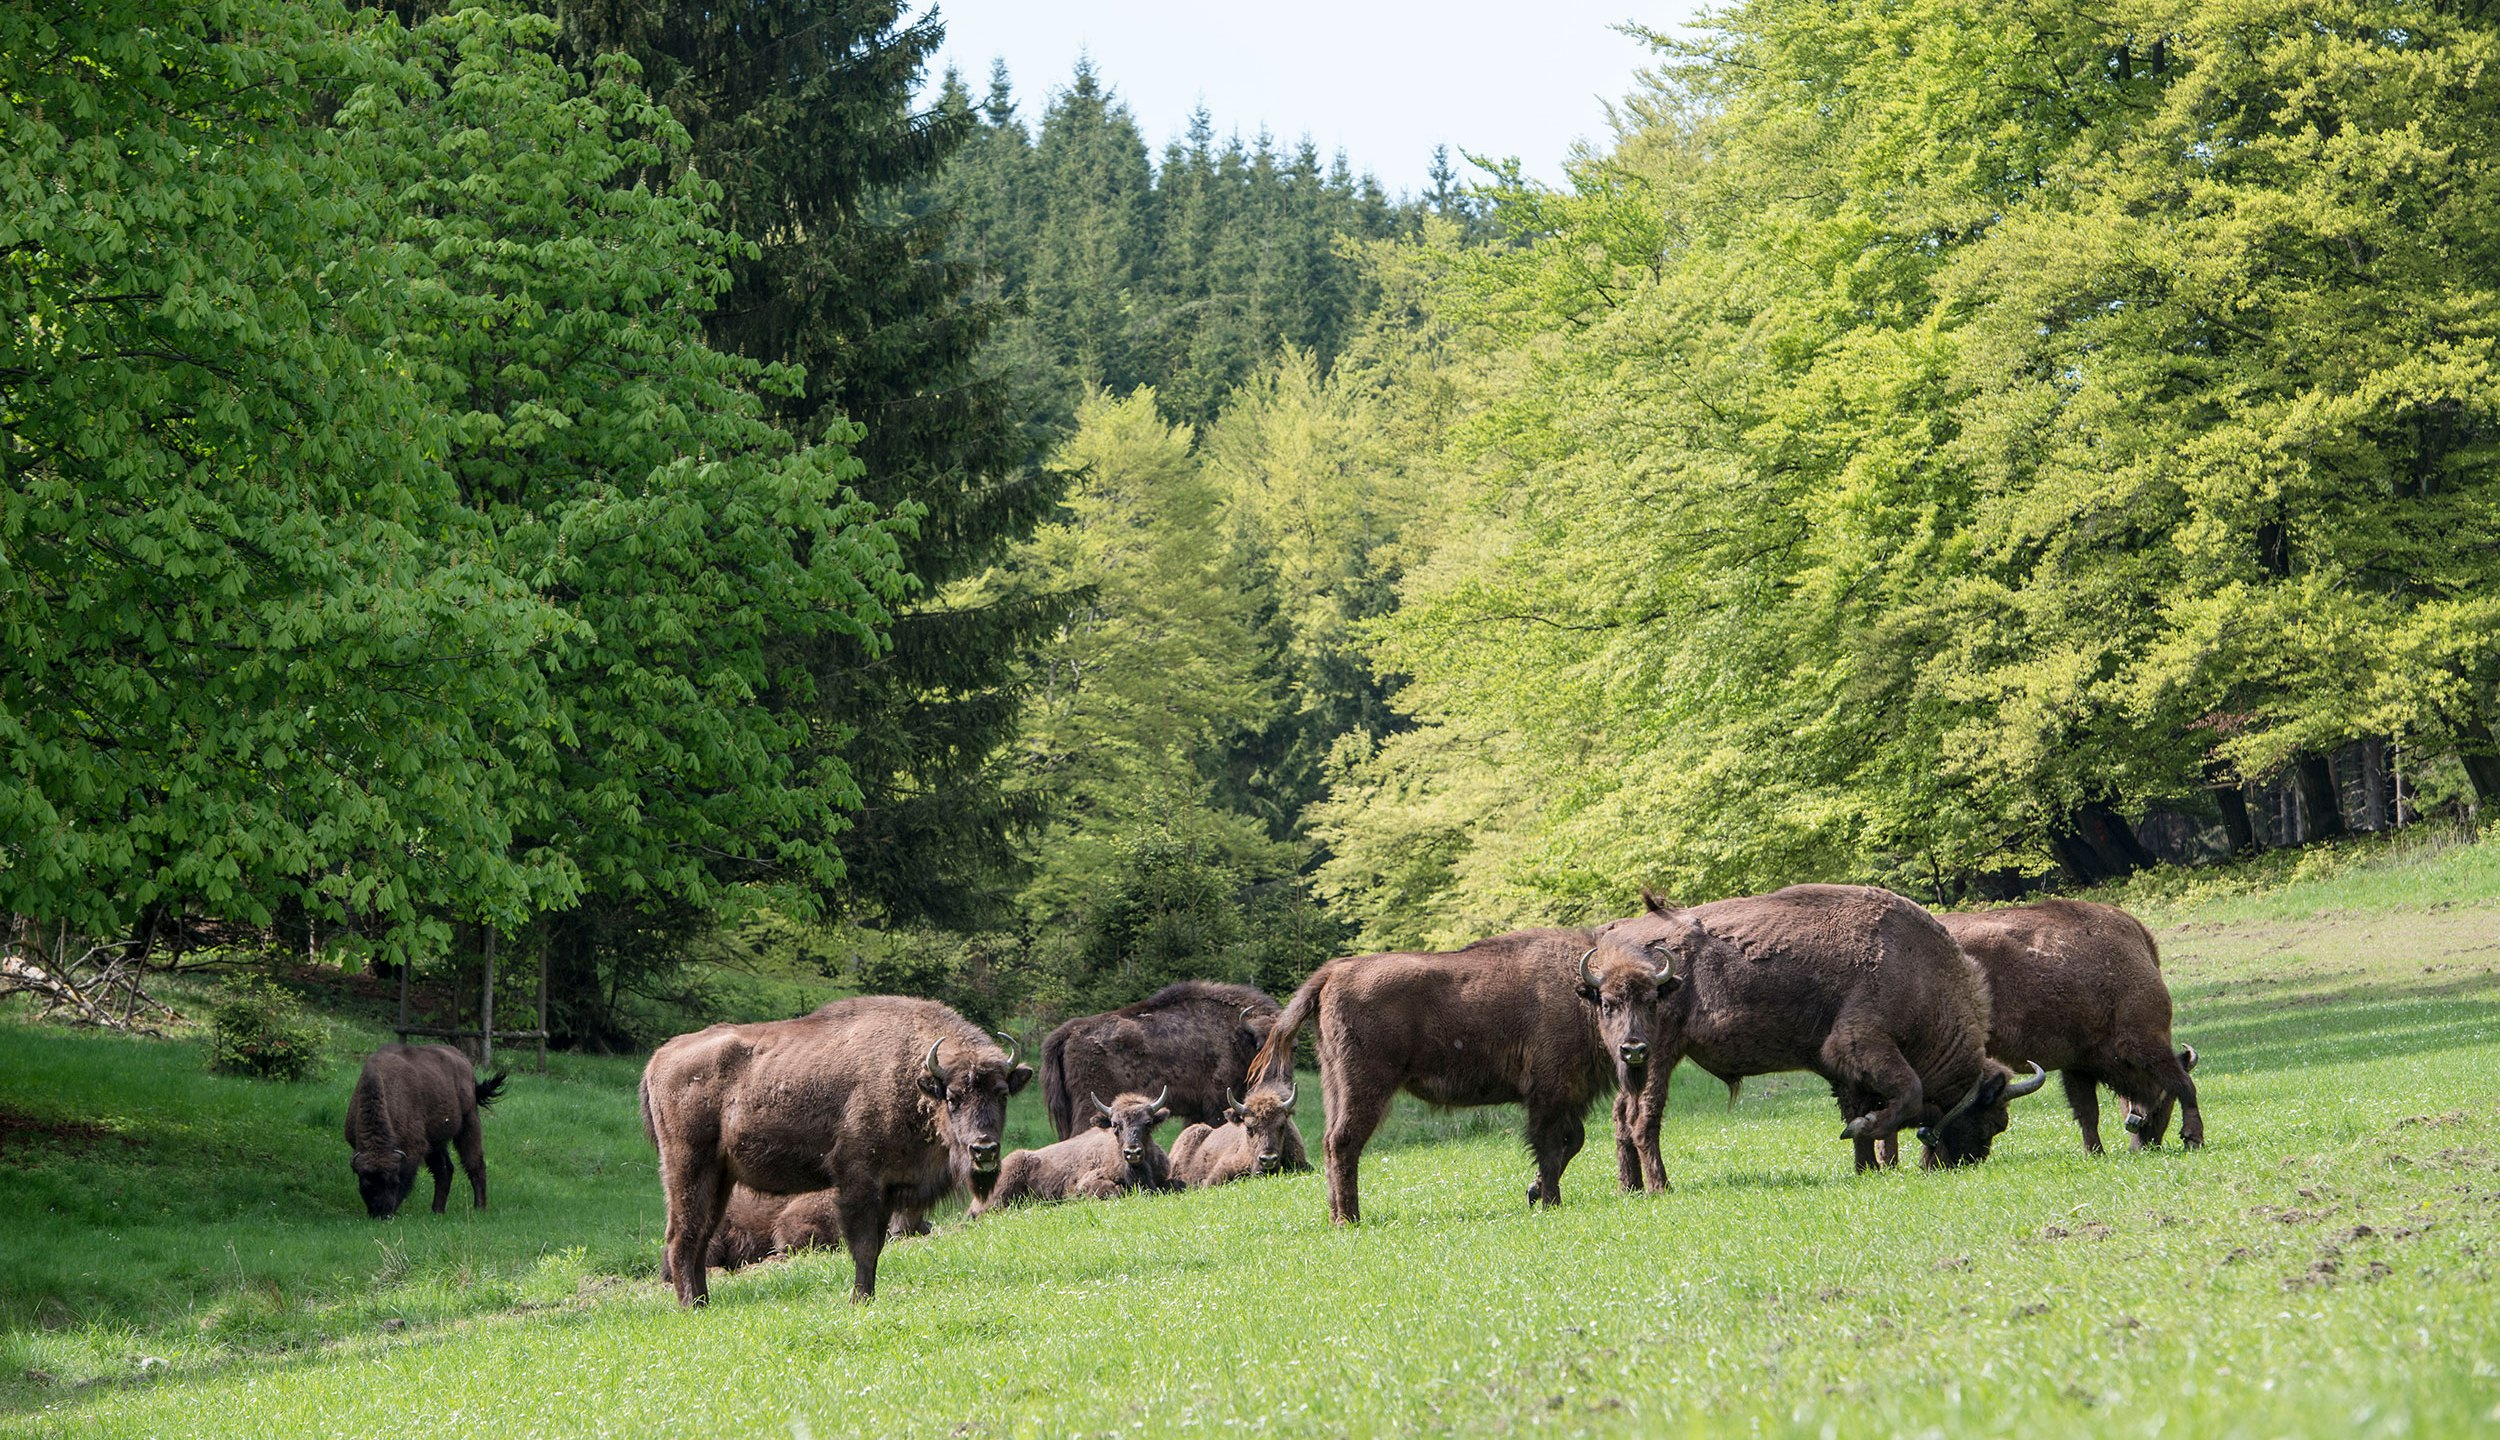 BAD BERLEBURG, GERMANY - MAY 05: A herd of eight European bison graze in the Rothaargebirge mountain range on May 5, 2014 near Bad Berleburg, Germany. The herd is a project of Wisent Welt Wittgenstein, a government-funded initiative which last year released the herd in an effort to restock the bison in the wild. European bison were once plentiful across Europe and Russia, though their numbers were decimated to near extinction by hunting and habitat encroachment. (Photo by Thomas Lohnes/Getty Images)